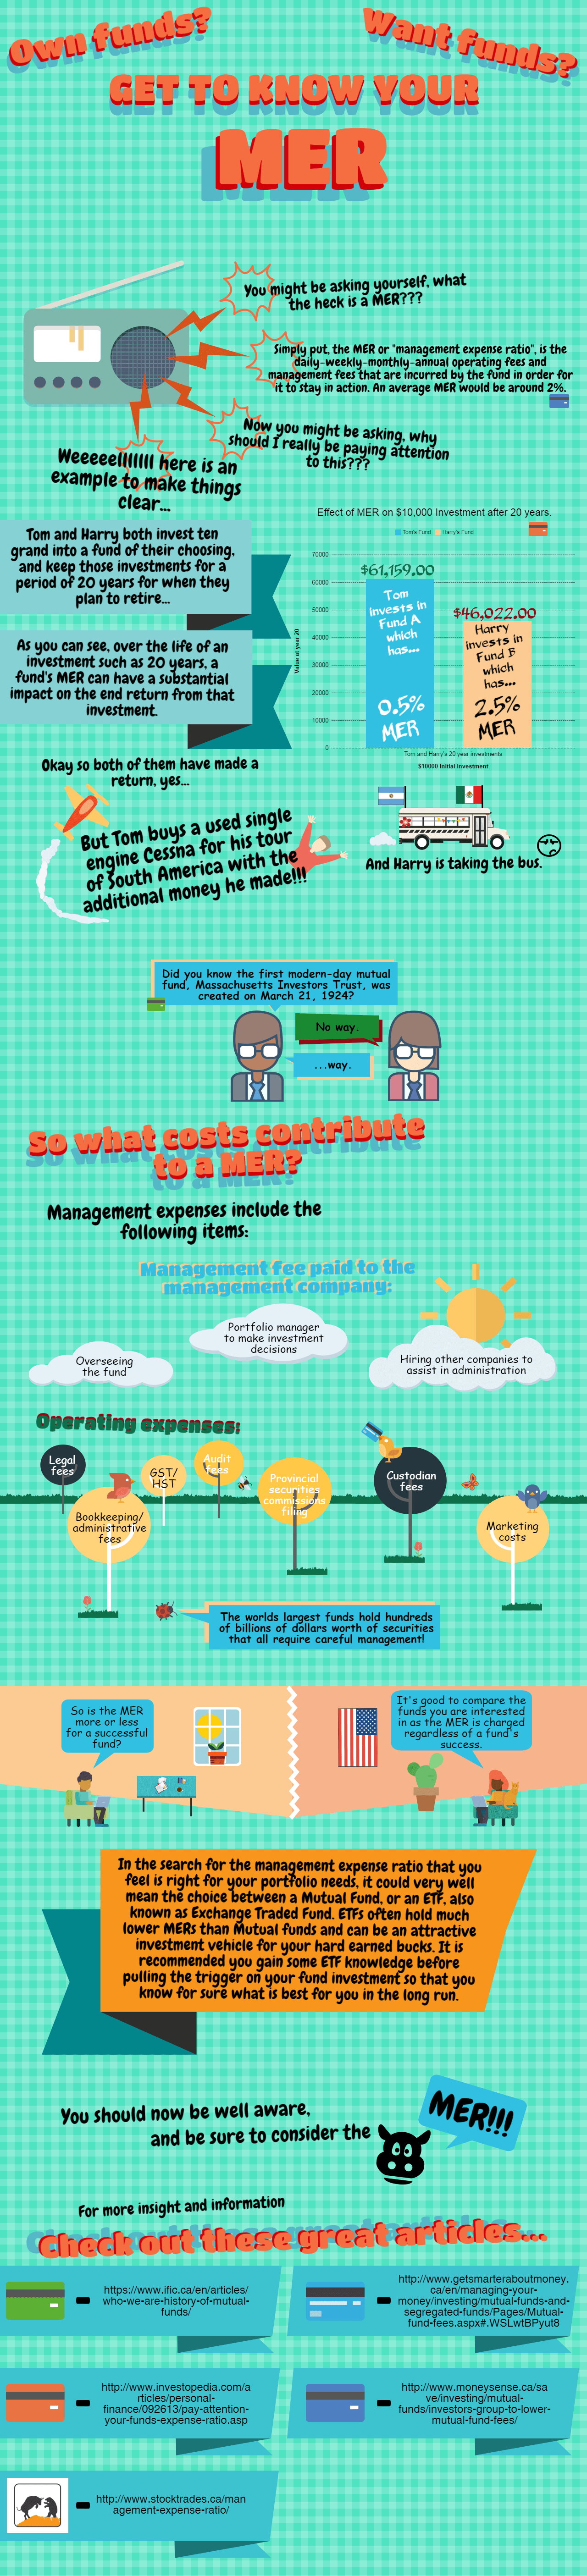 management expense ratio infographic